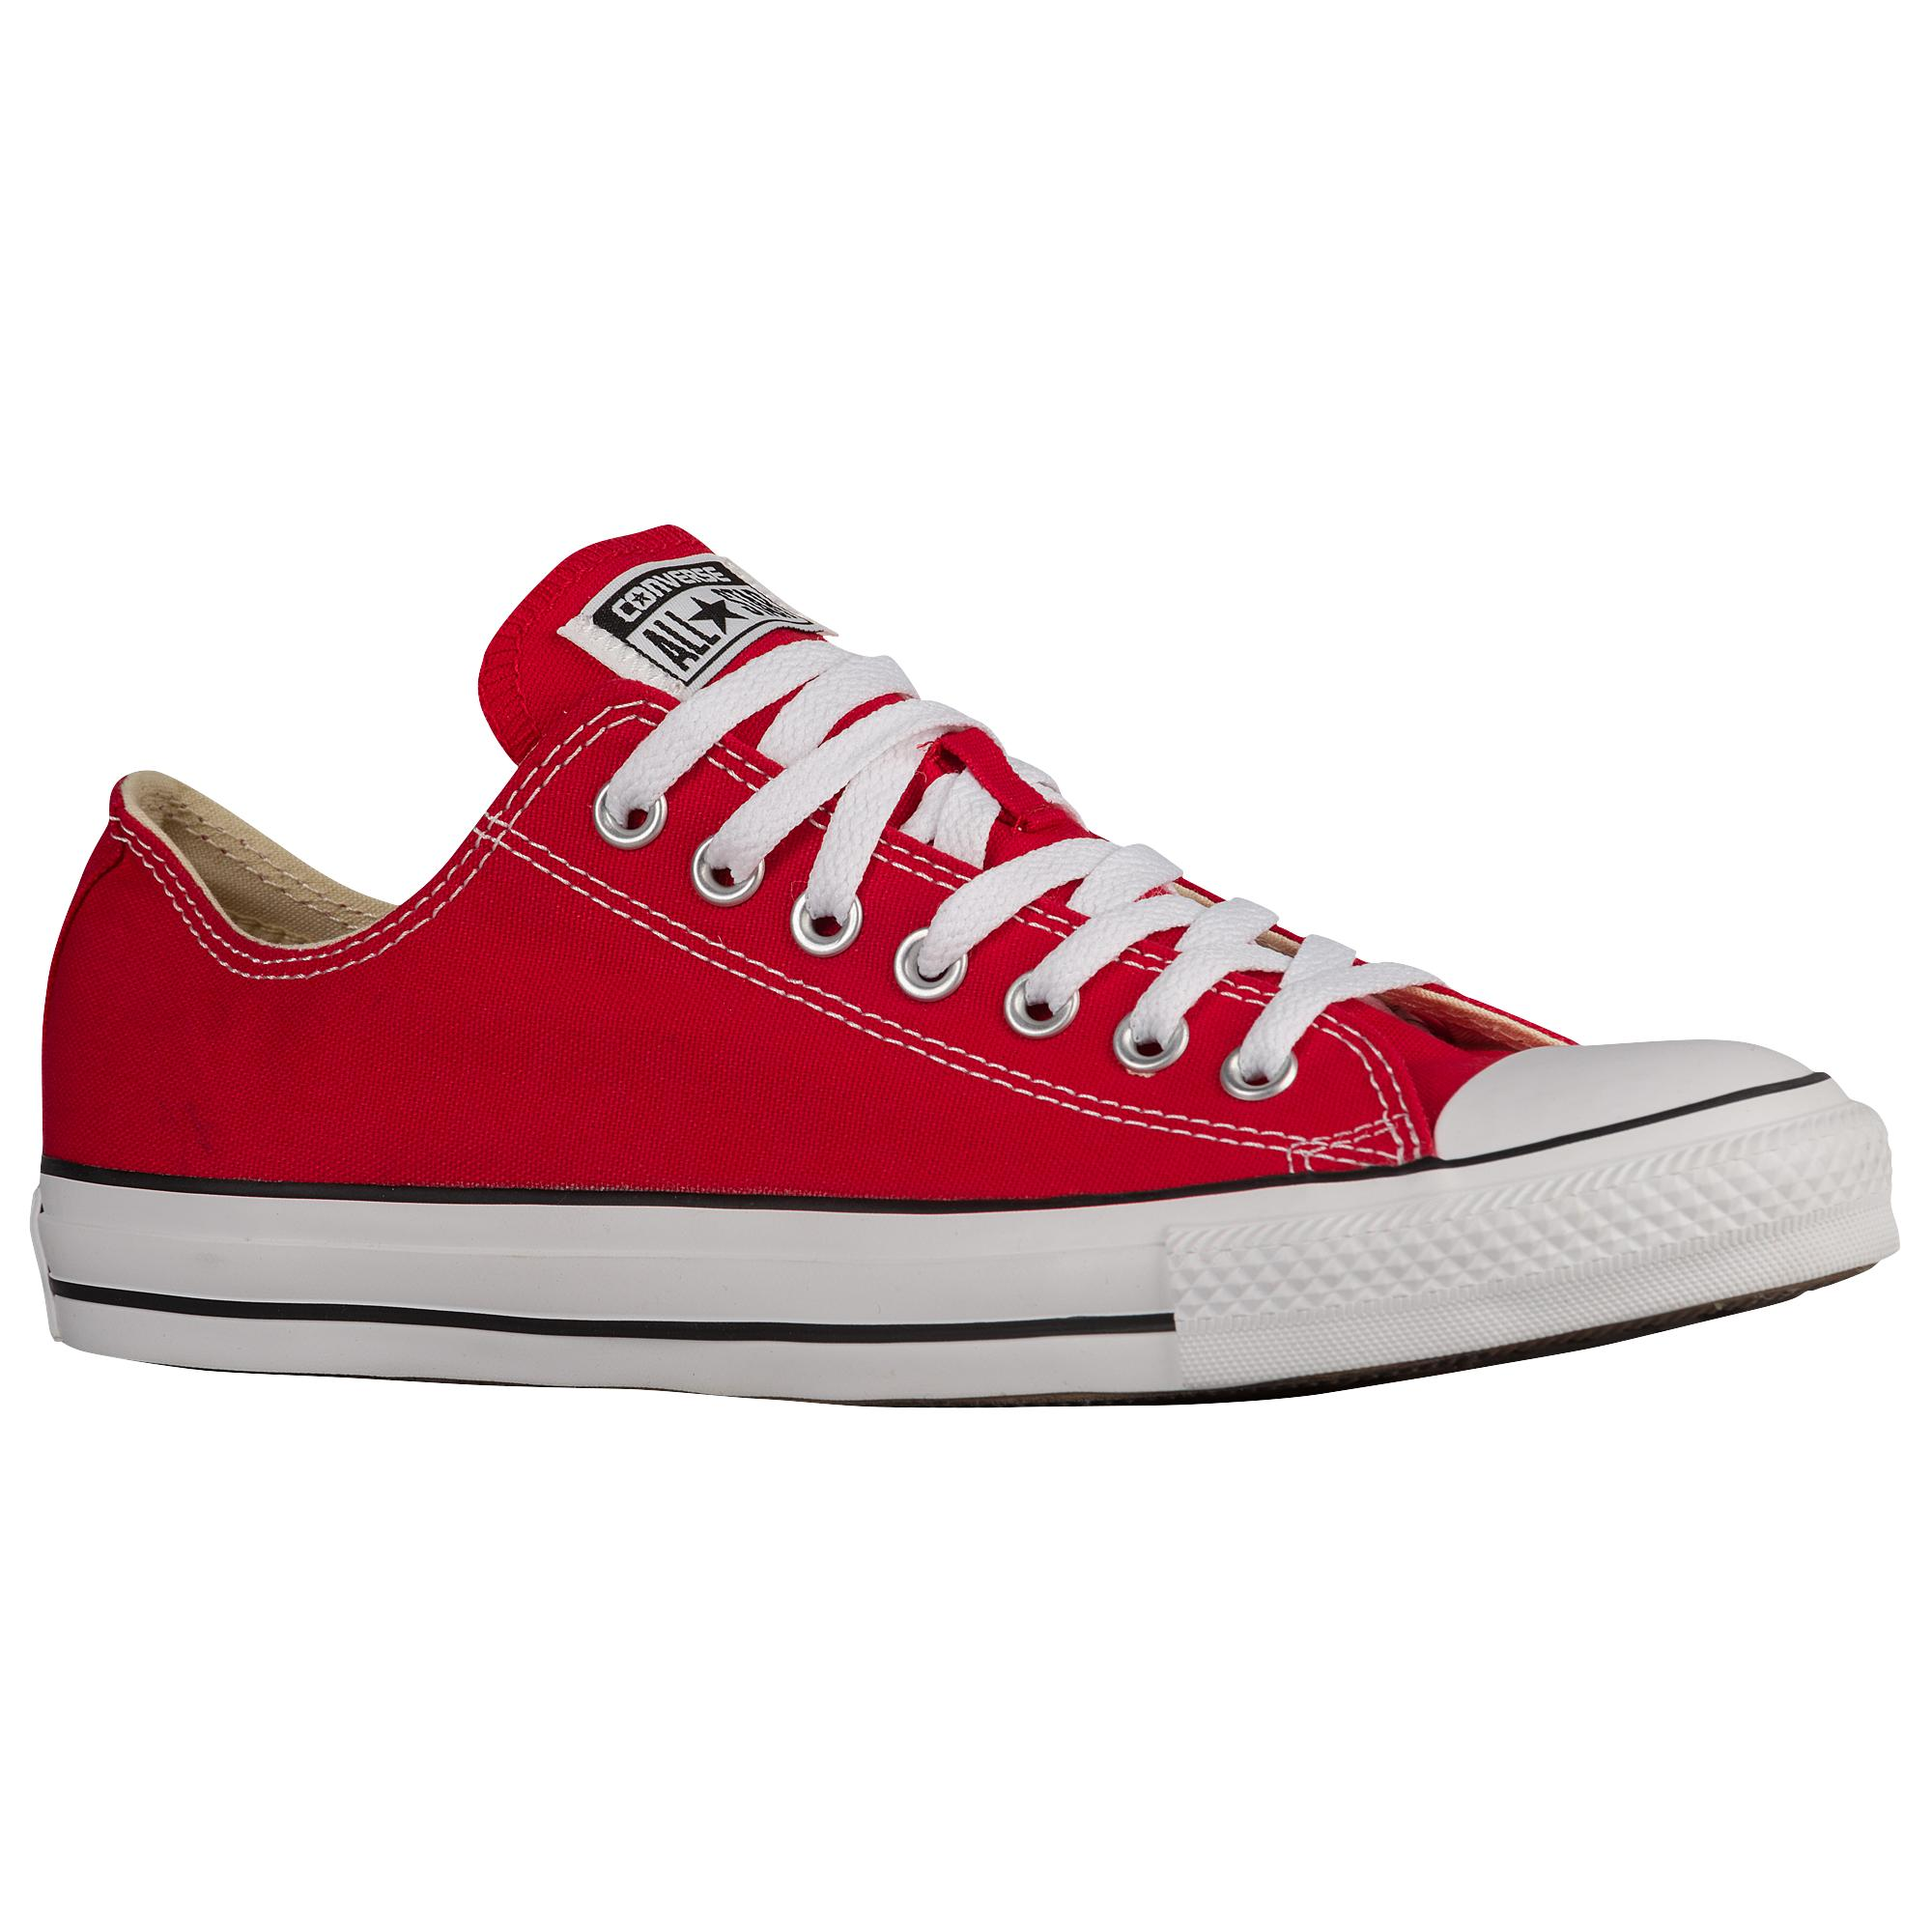 Unisex Flat All Star Lace Up Plimsolls Summer Shoes Red PU